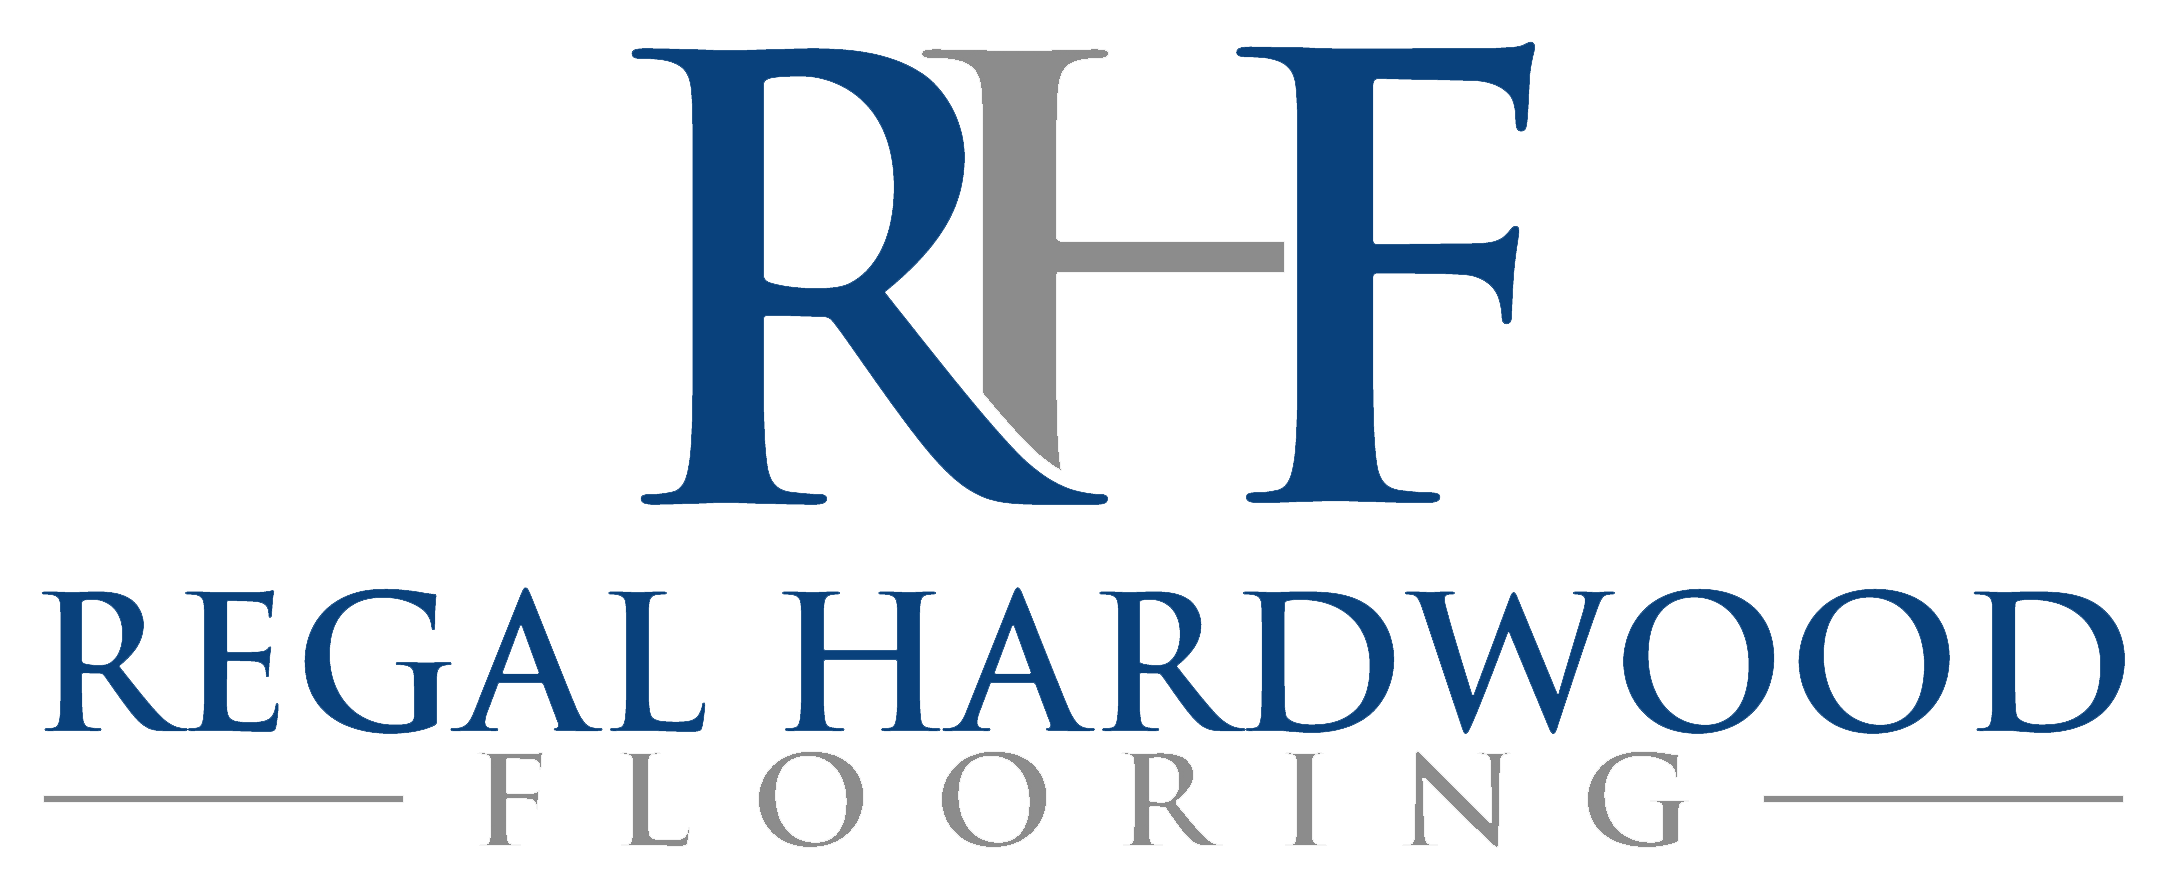 Regal Hardwood Flooring Distributor in Baytown  TX from Flooring Source